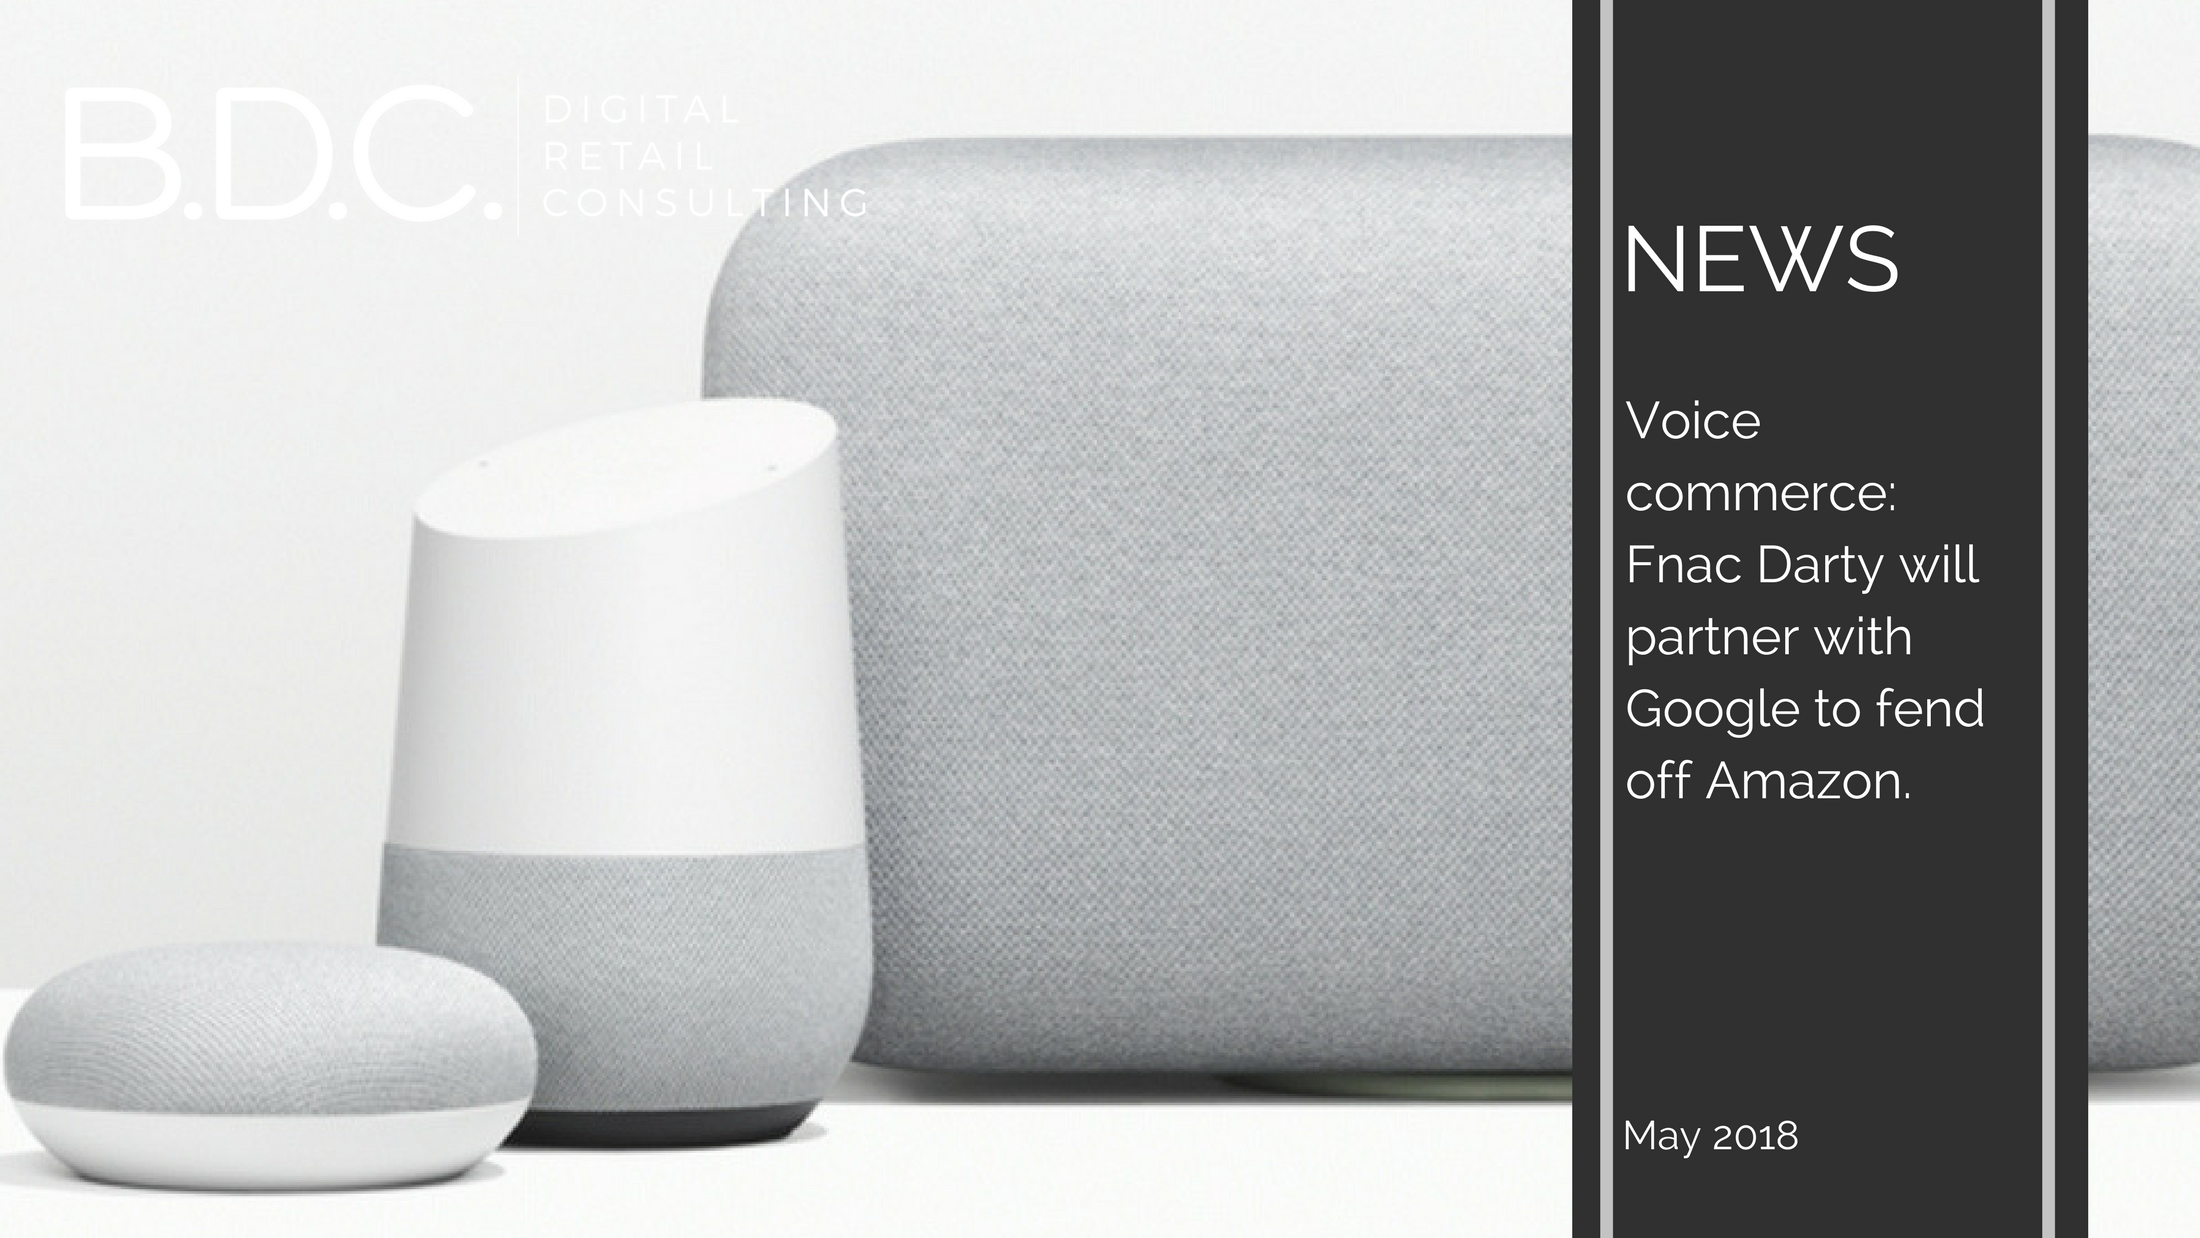 Trends News 35 - Voice commerce: Fnac Darty will partner with Google to fend off Amazon